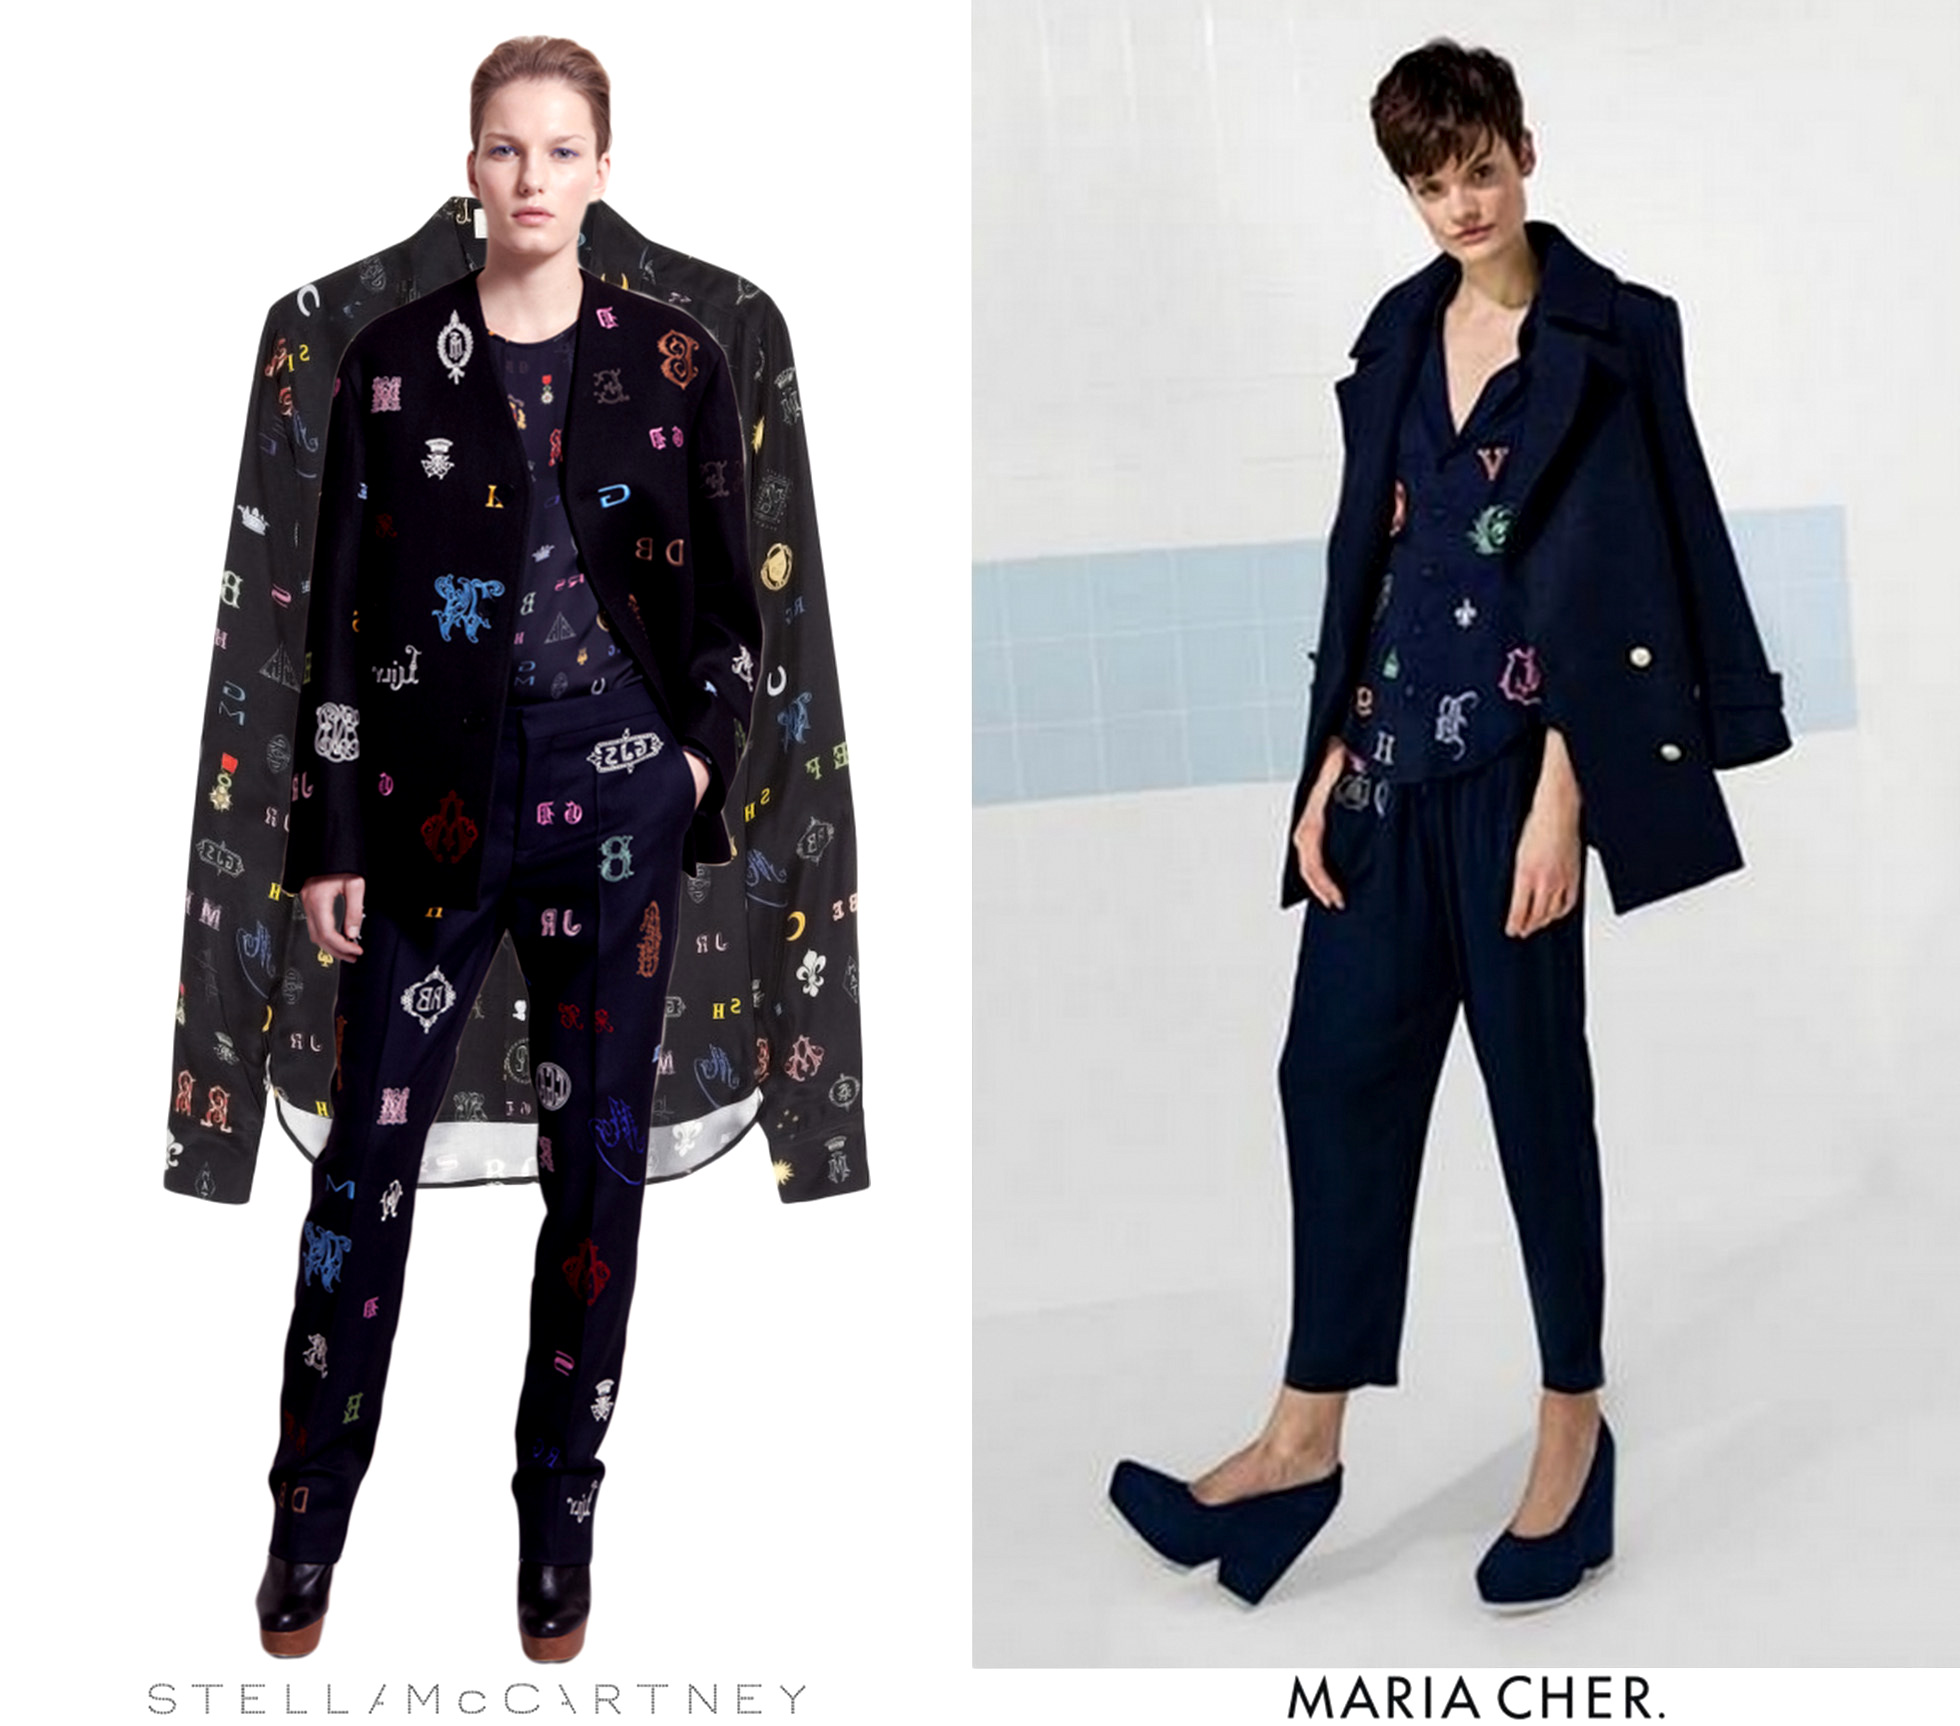 Stella-Mccartney-Pre-Fall-2012-Maria-Cher-Invierno-2014-Copias-Clones 1982x1711.jpg